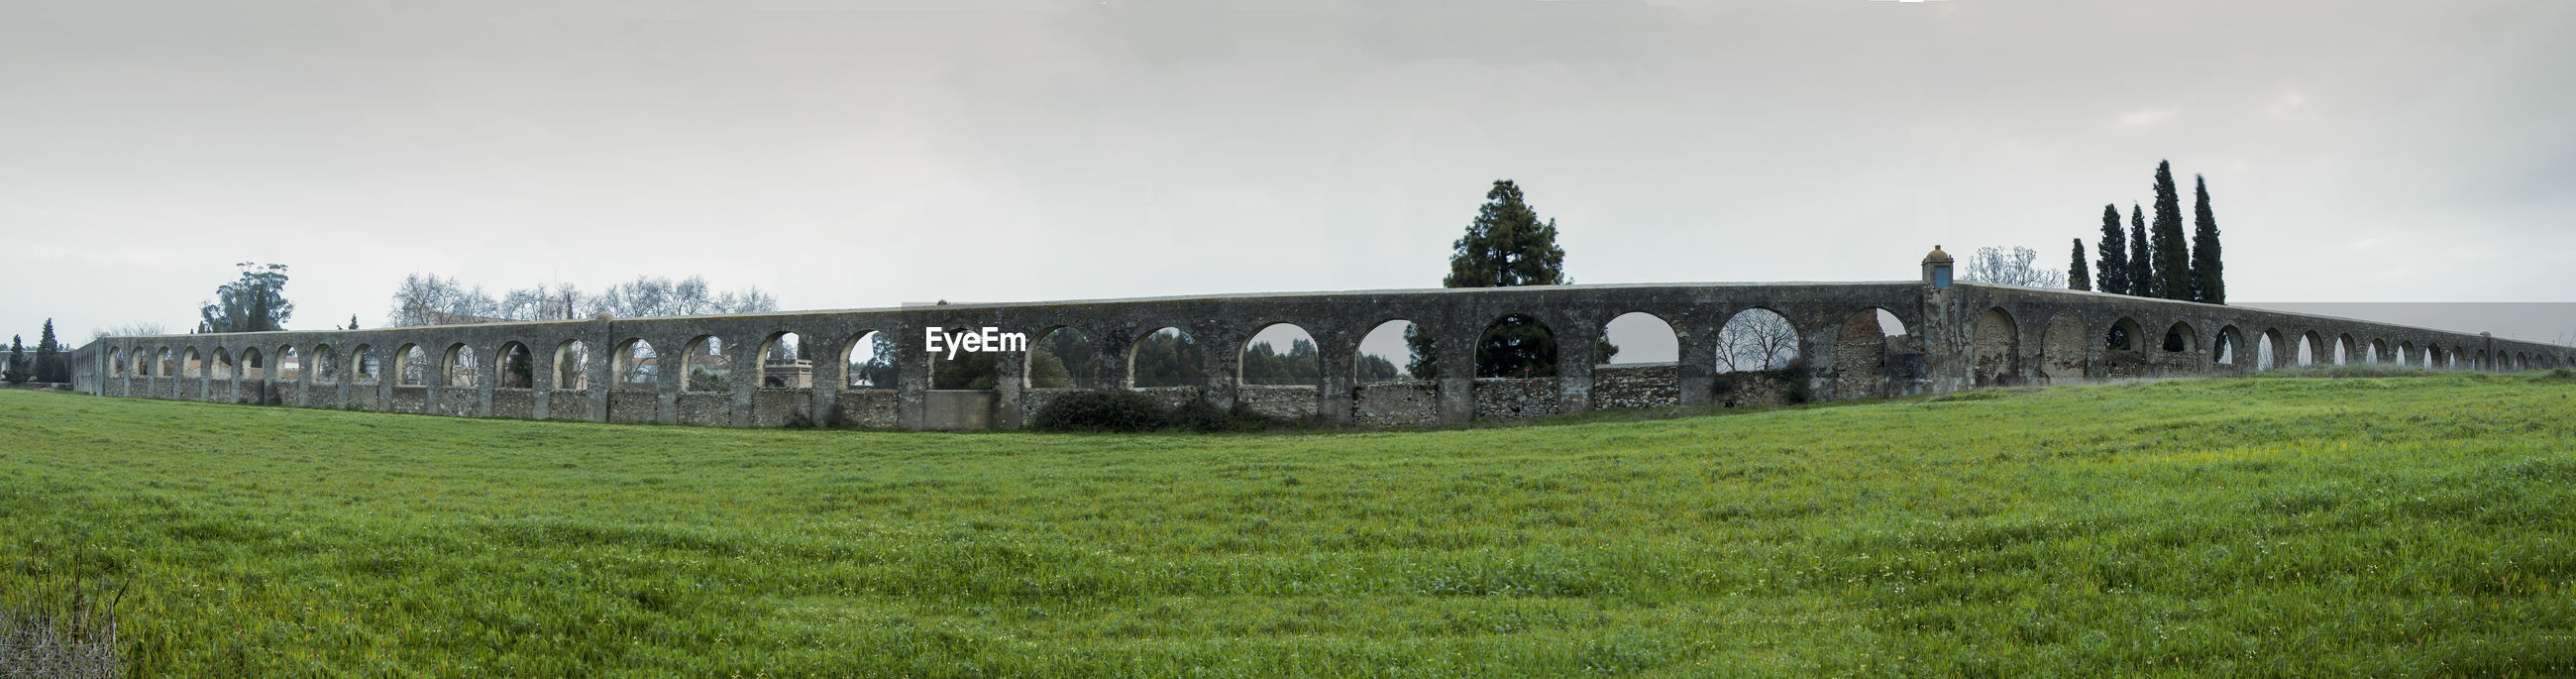 Panoramic view of built structure against sky